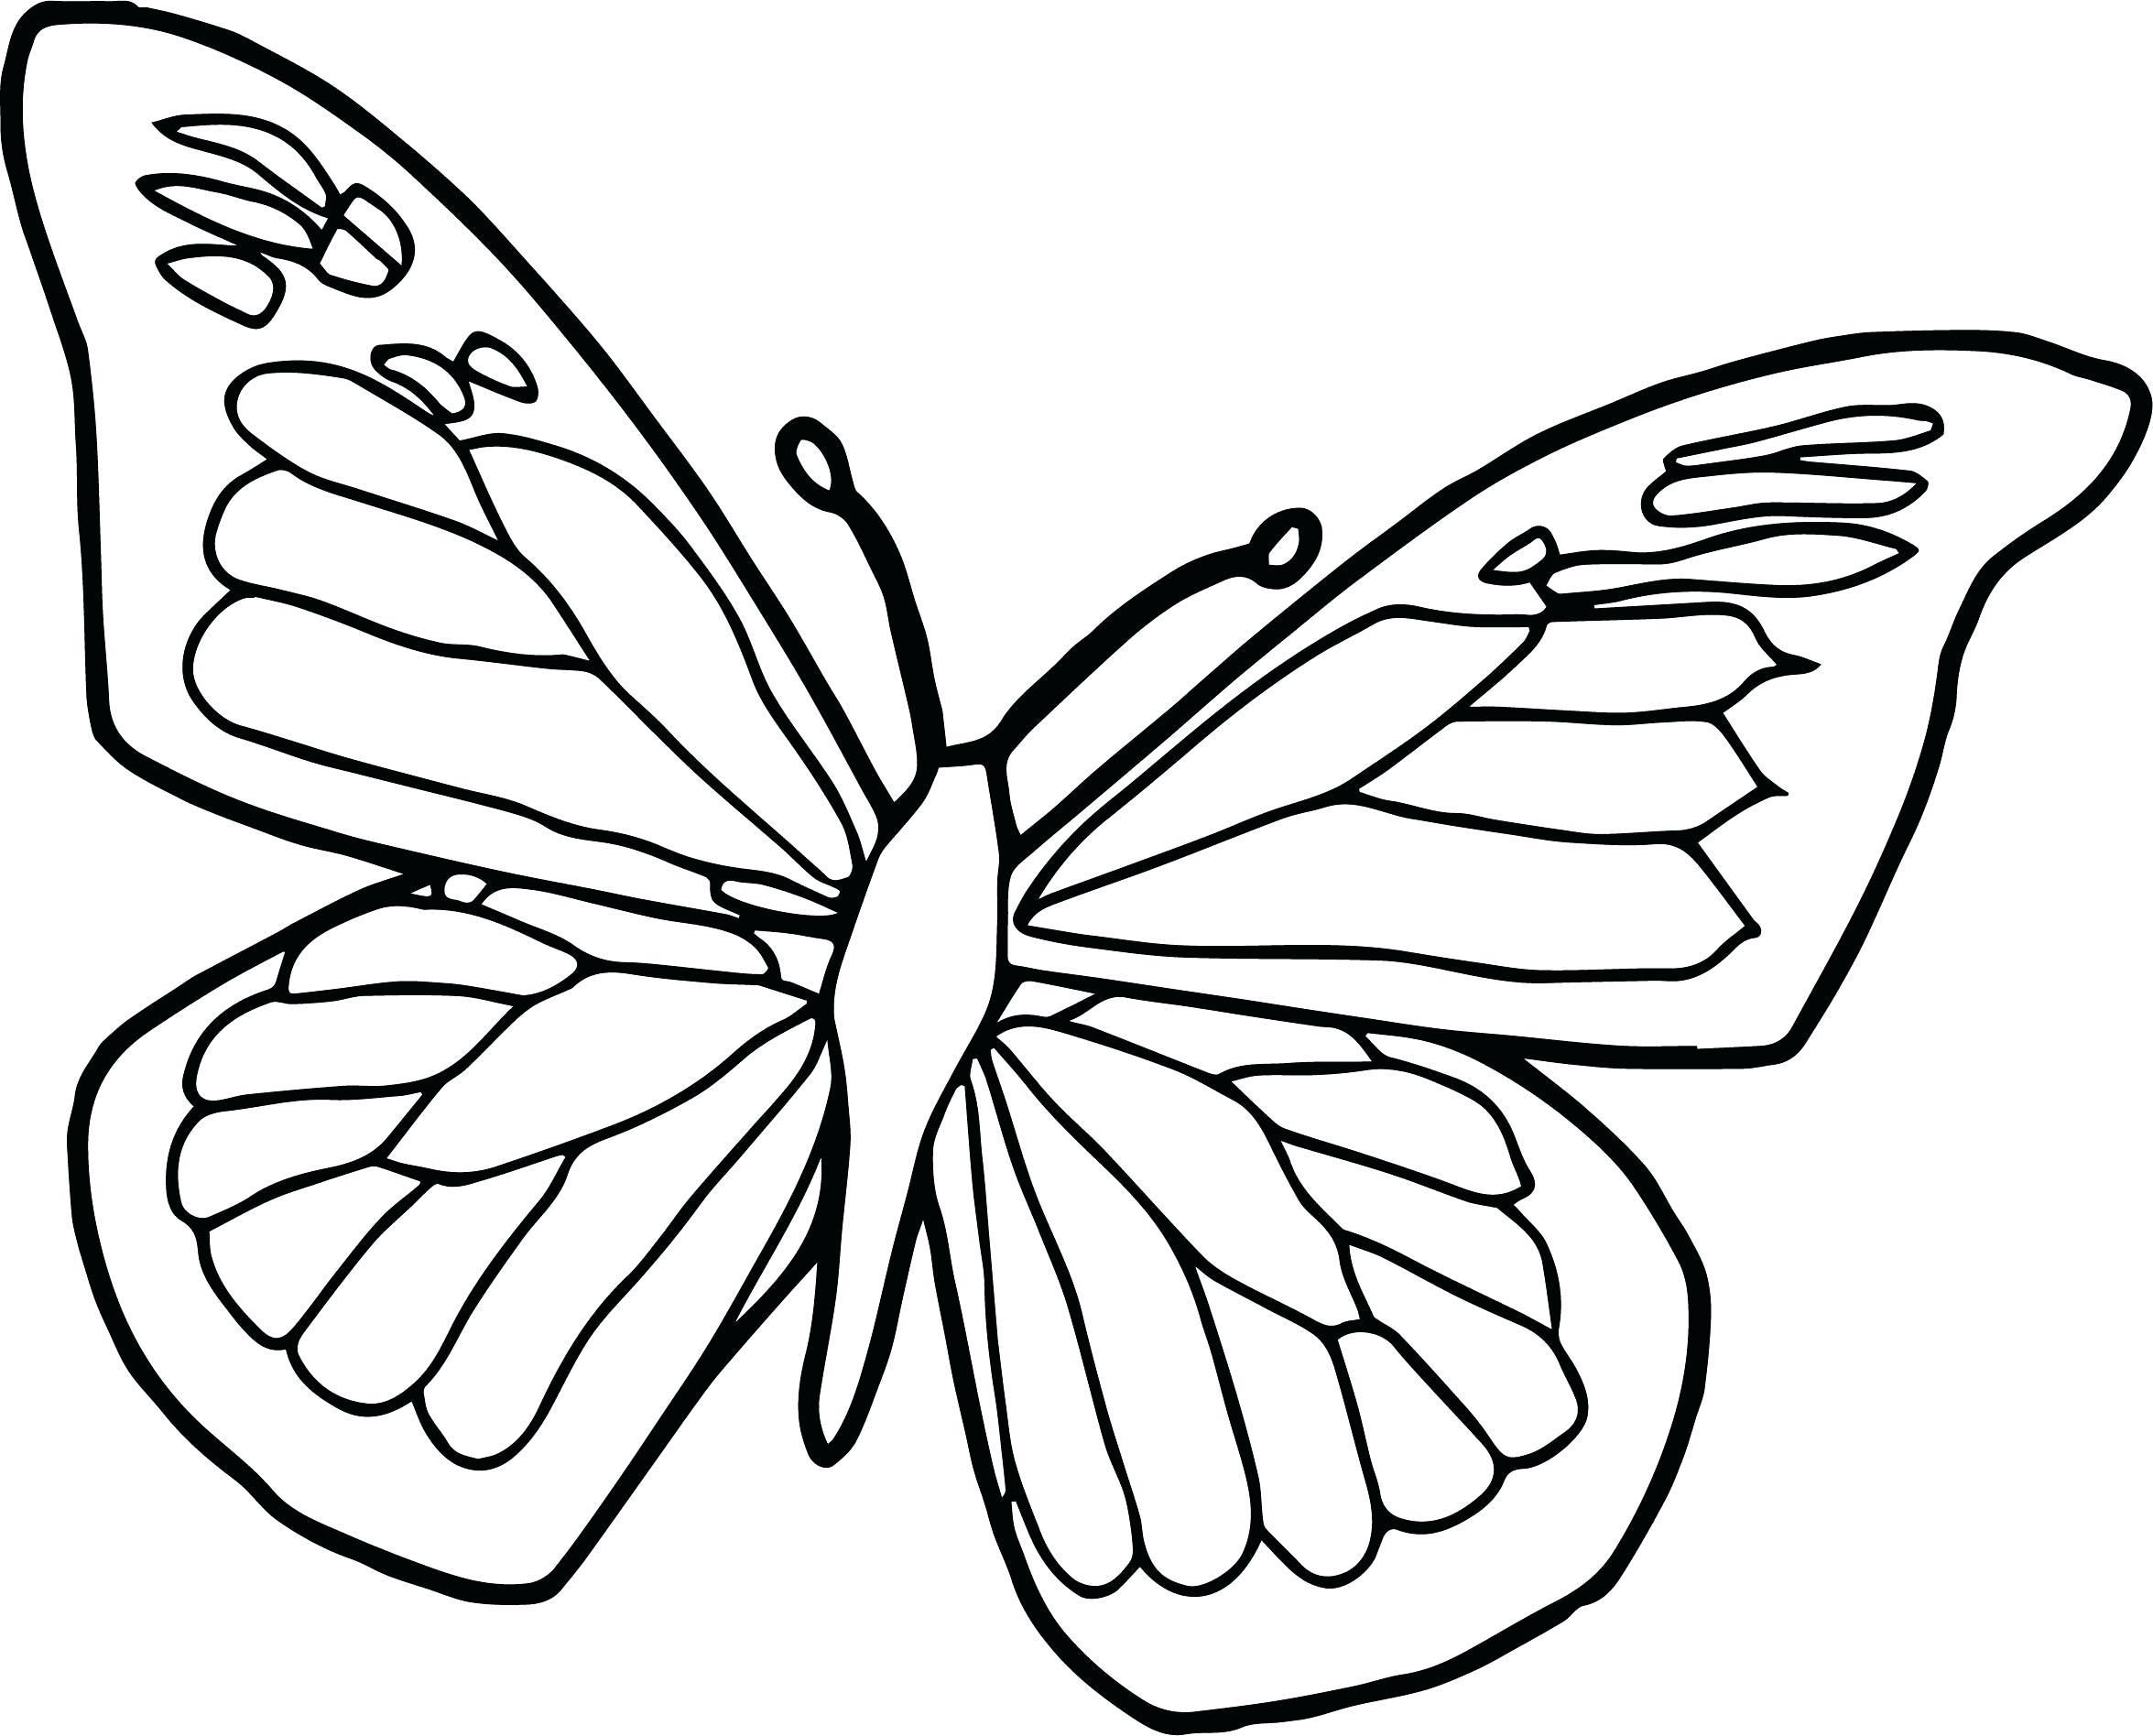 10 Butterfly Coloring In Page Butterfly Coloring Page Butterfly Coloring Butterfly Printable